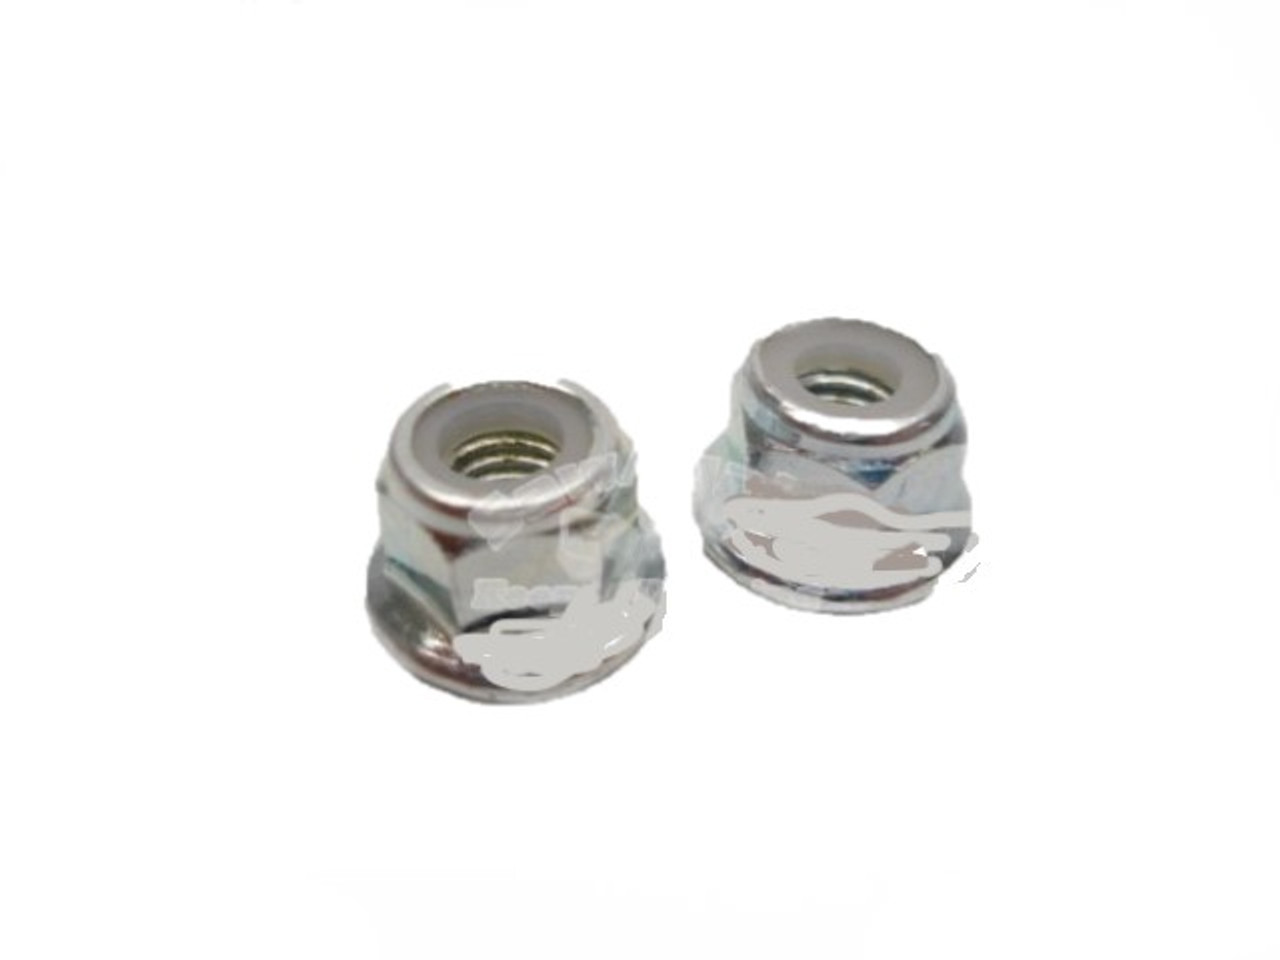 Echo 10Mm Bar Nut Set Of Two, Fits Most Small Echo Chainsaws Including Cs-300, 301, 303T, 305, 306, 340, 341, 346, 3400, 3450, Cs-361, 43301903933